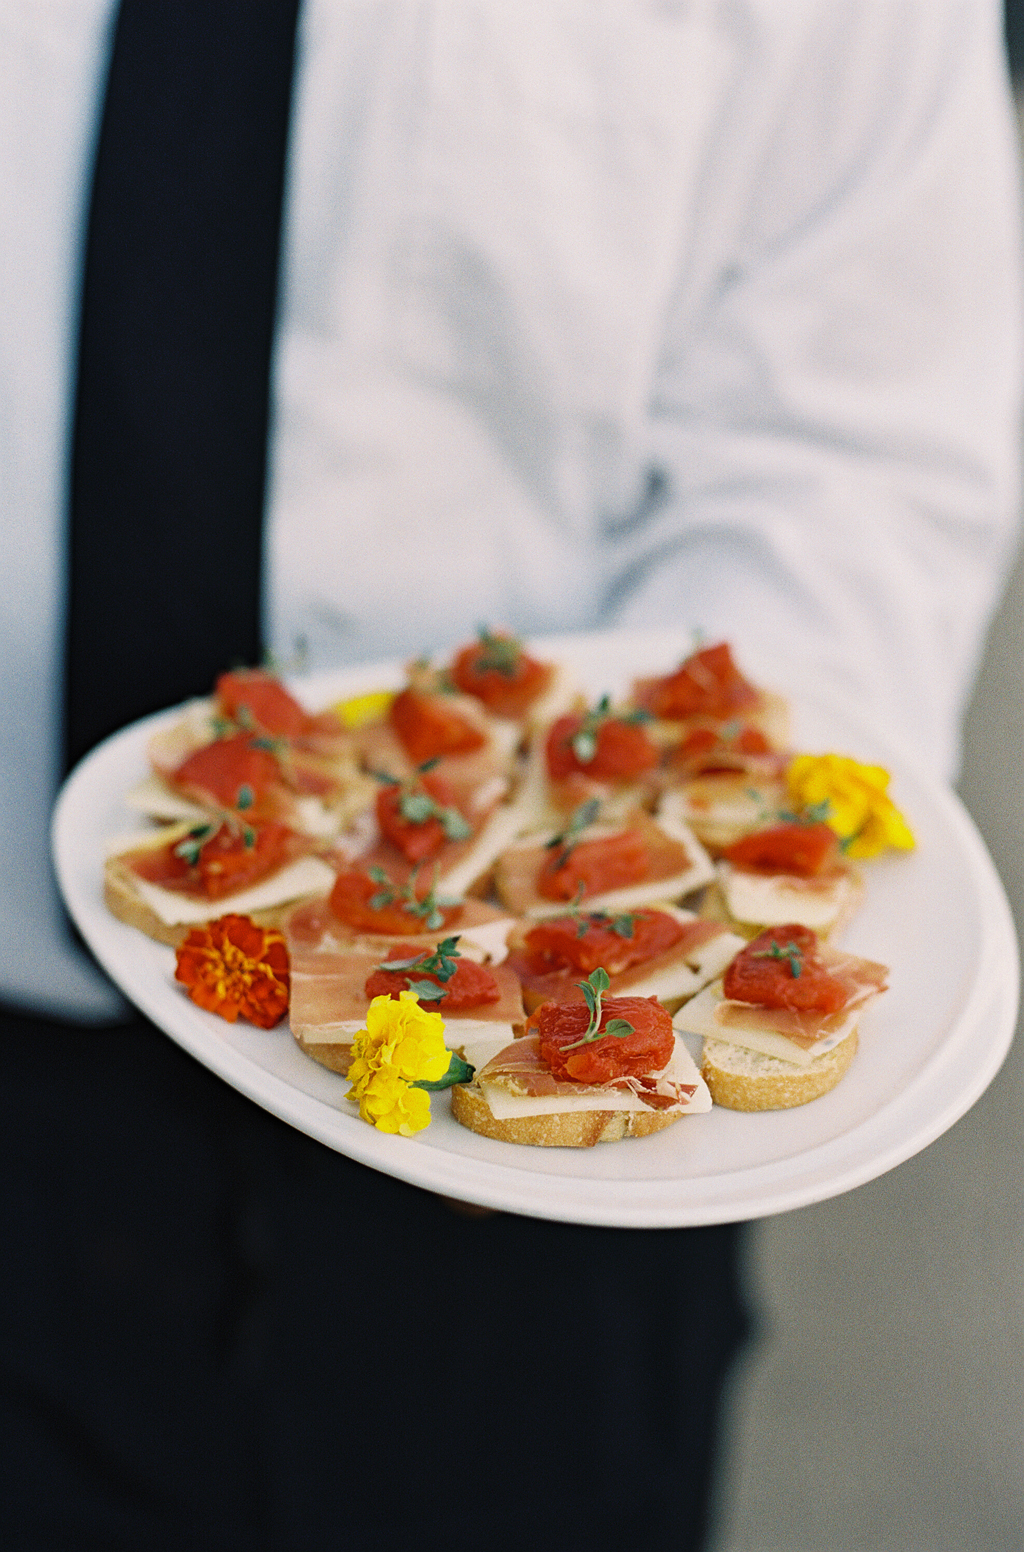 Culinary institute of america catering a wedding in Napa Valley by film photographer Michael Radford.